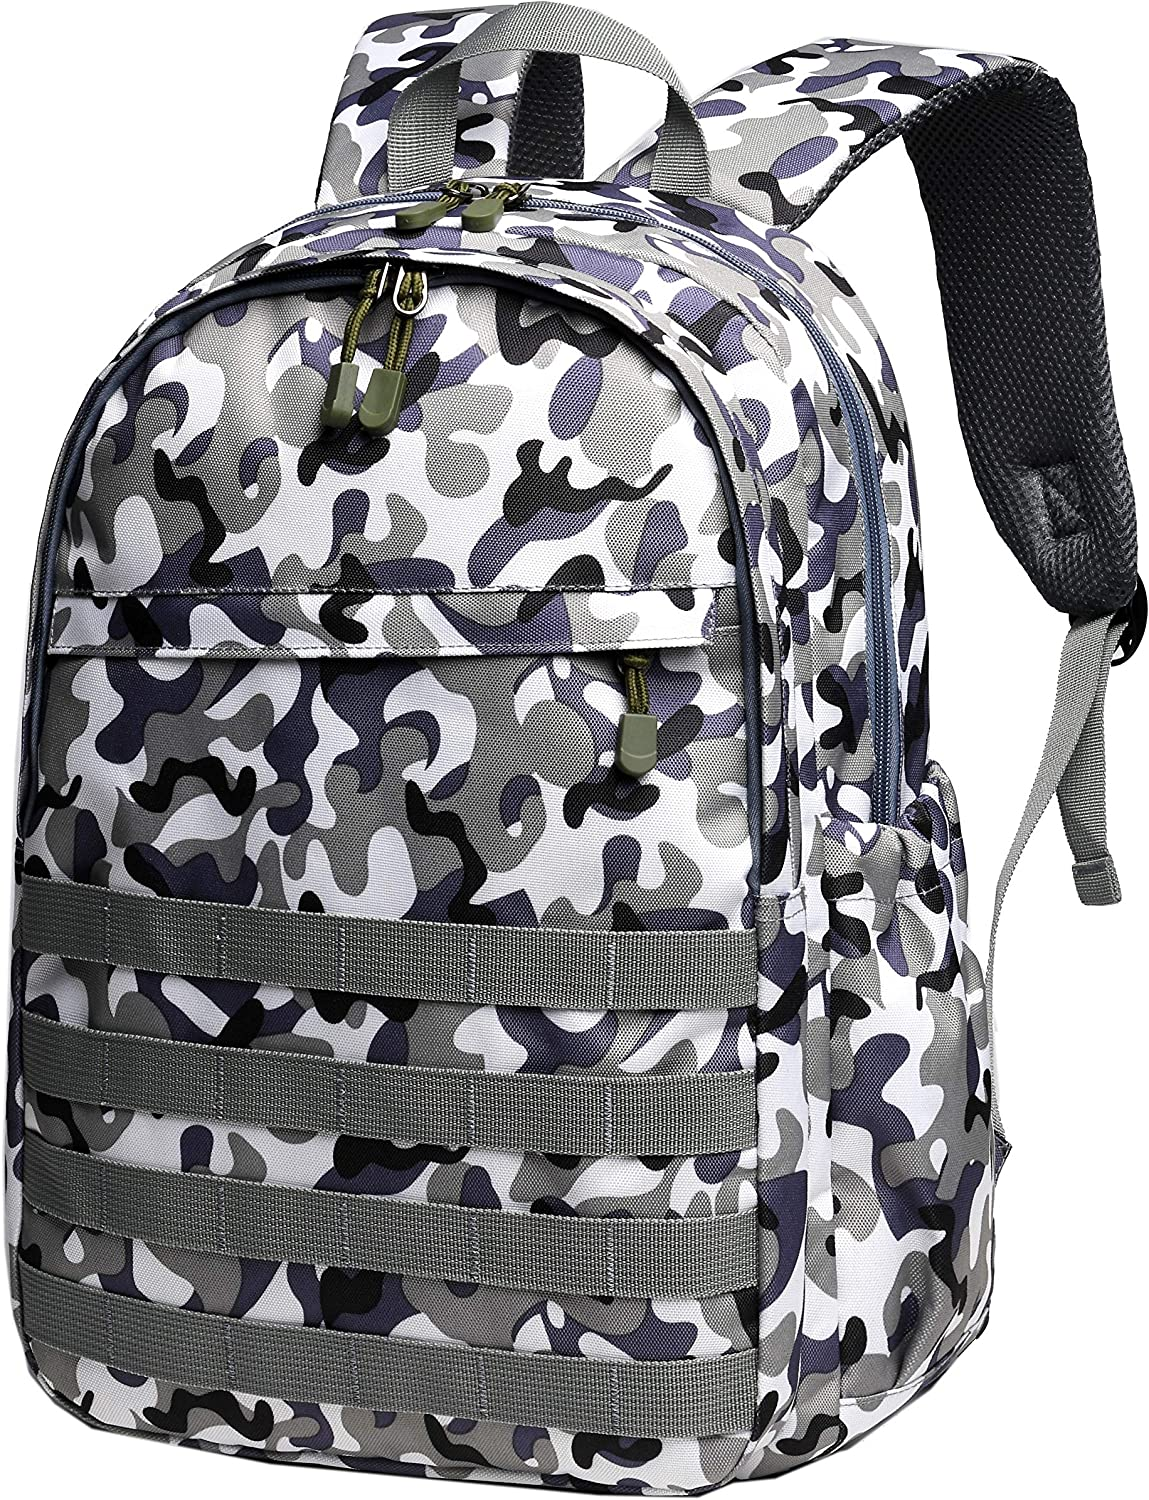 Boys Backpack Waterproof Kids School Bag Outdoor Travel Camping Daypack Camo Rucksack